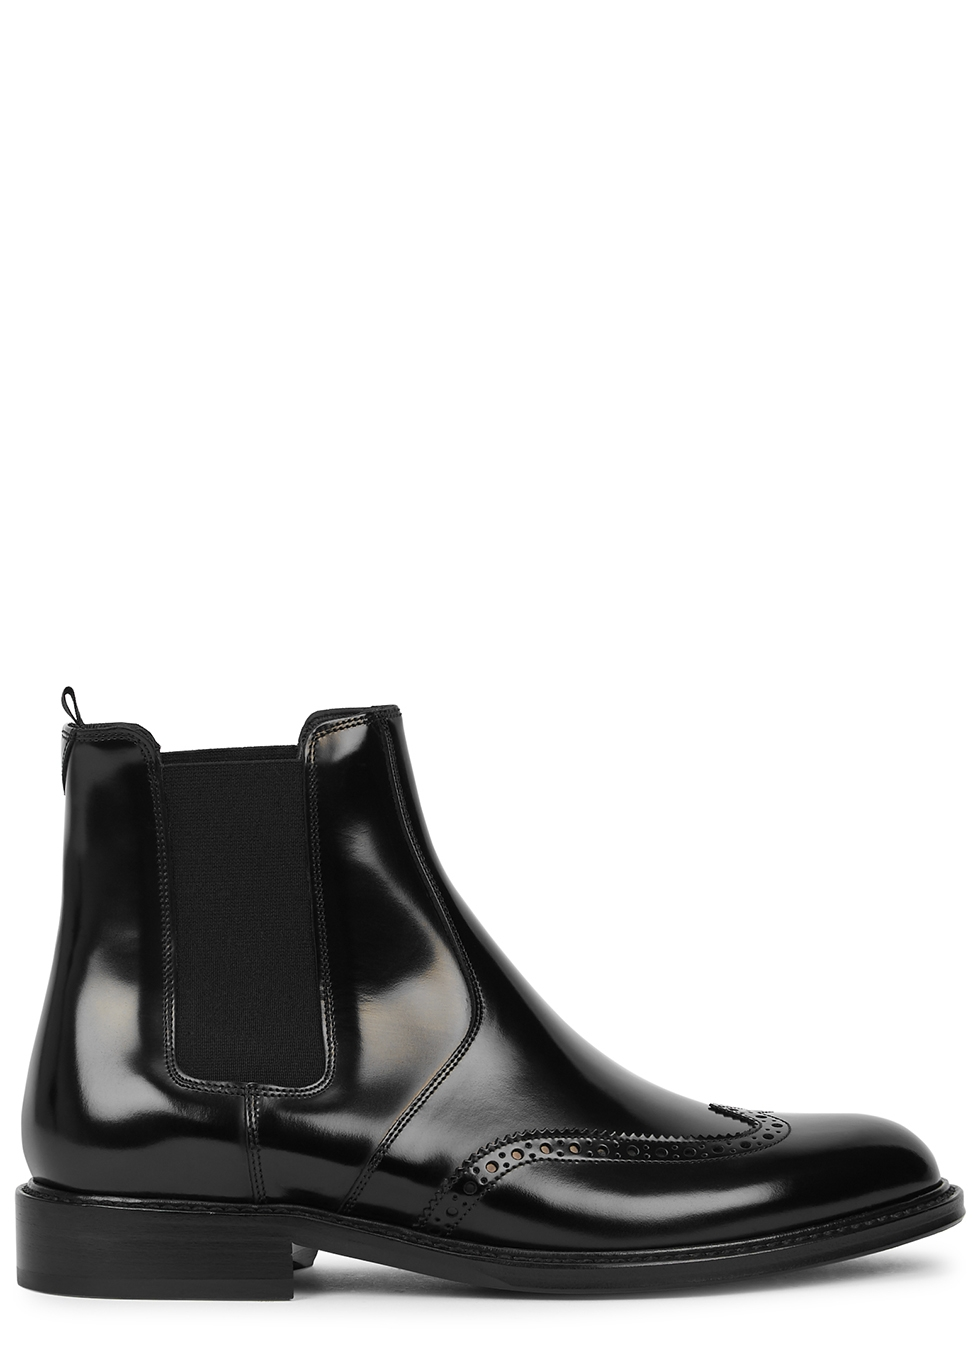 Army black glossed leather Chelsea boots